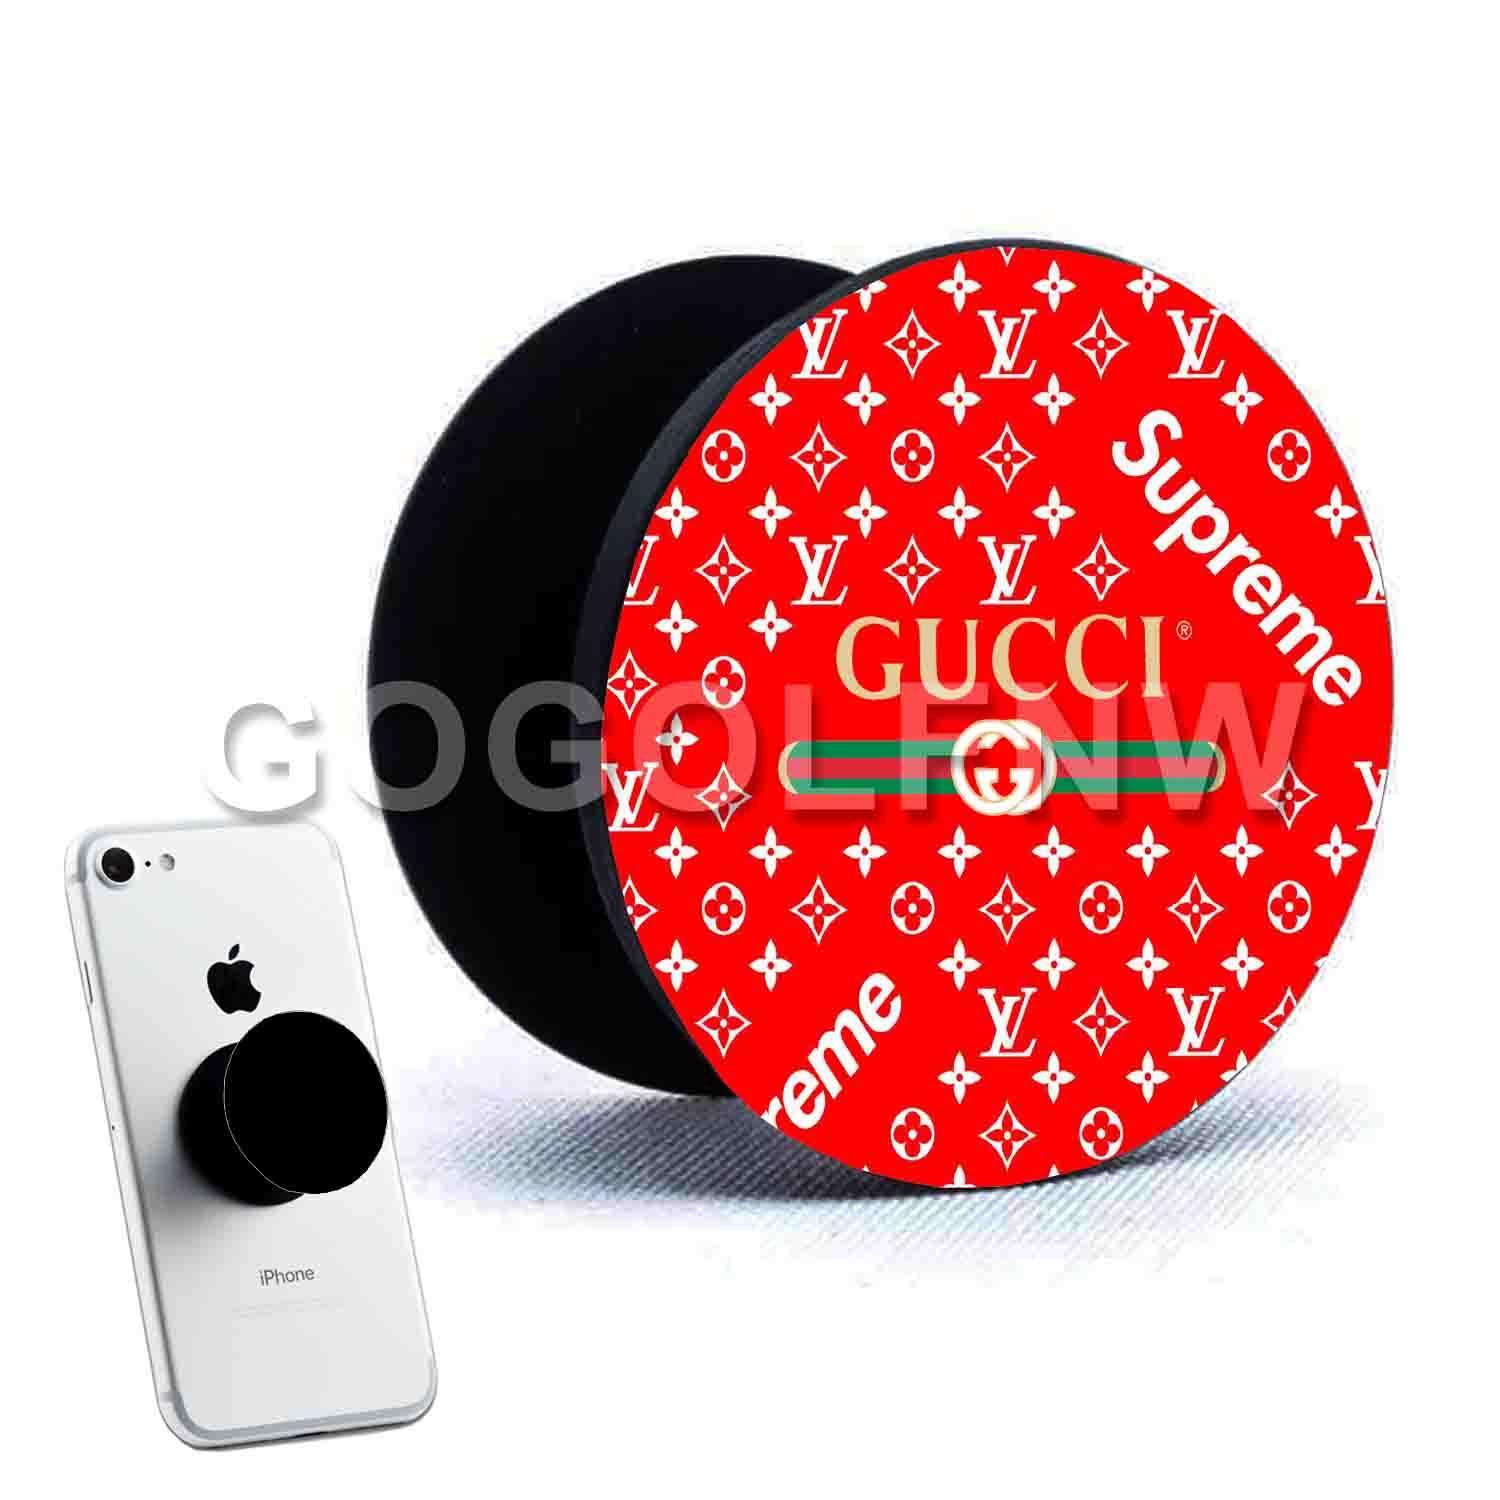 eb2f9b0a6ef47 Gucci Supreme Louis Vuitton Phone Pop Out Stand Grip Up